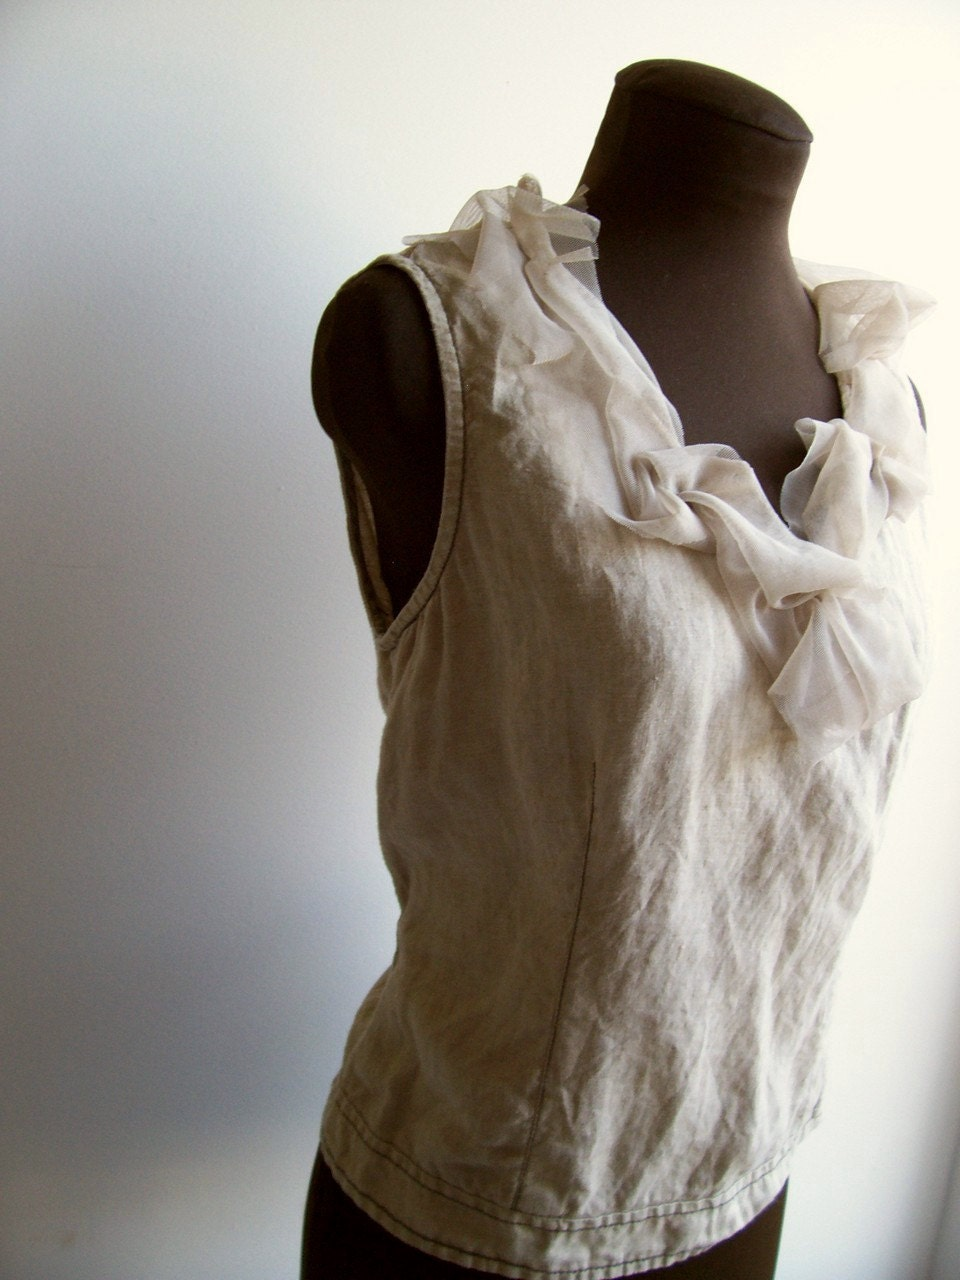 Boho Linen Shirt Toasted Sand Sleeveless Romantic Beach Eco Friendly Summer Camisole Urban Shabby Chic M - colorada